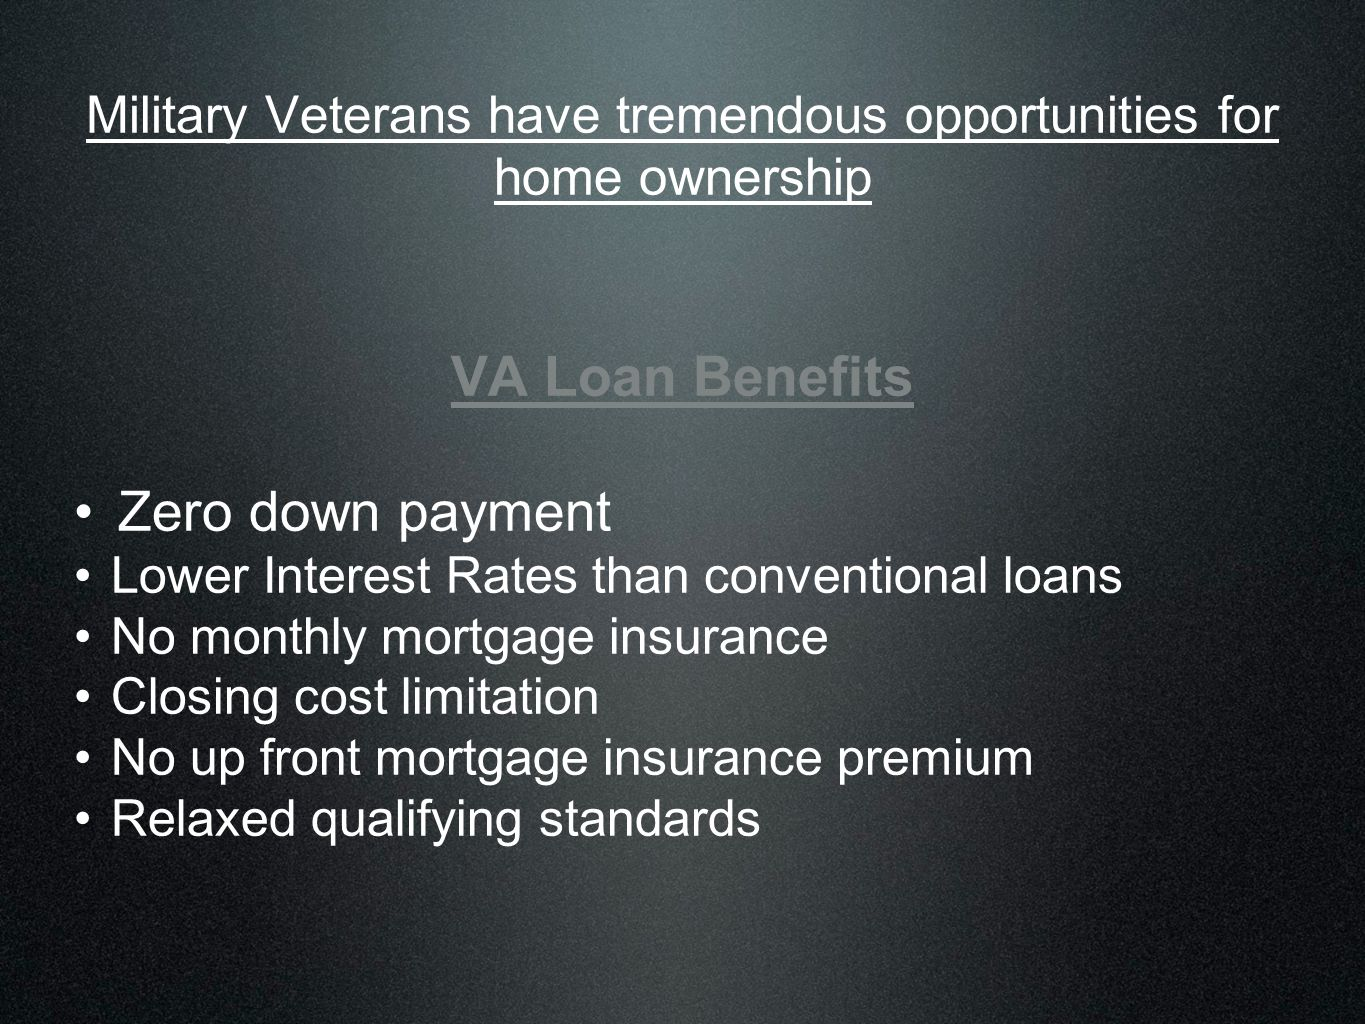 Military Veterans have tremendous opportunities for home ownership VA Loan Benefits Zero down payment Lower Interest Rates than conventional loans No monthly mortgage insurance Closing cost limitation No up front mortgage insurance premium Relaxed qualifying standards